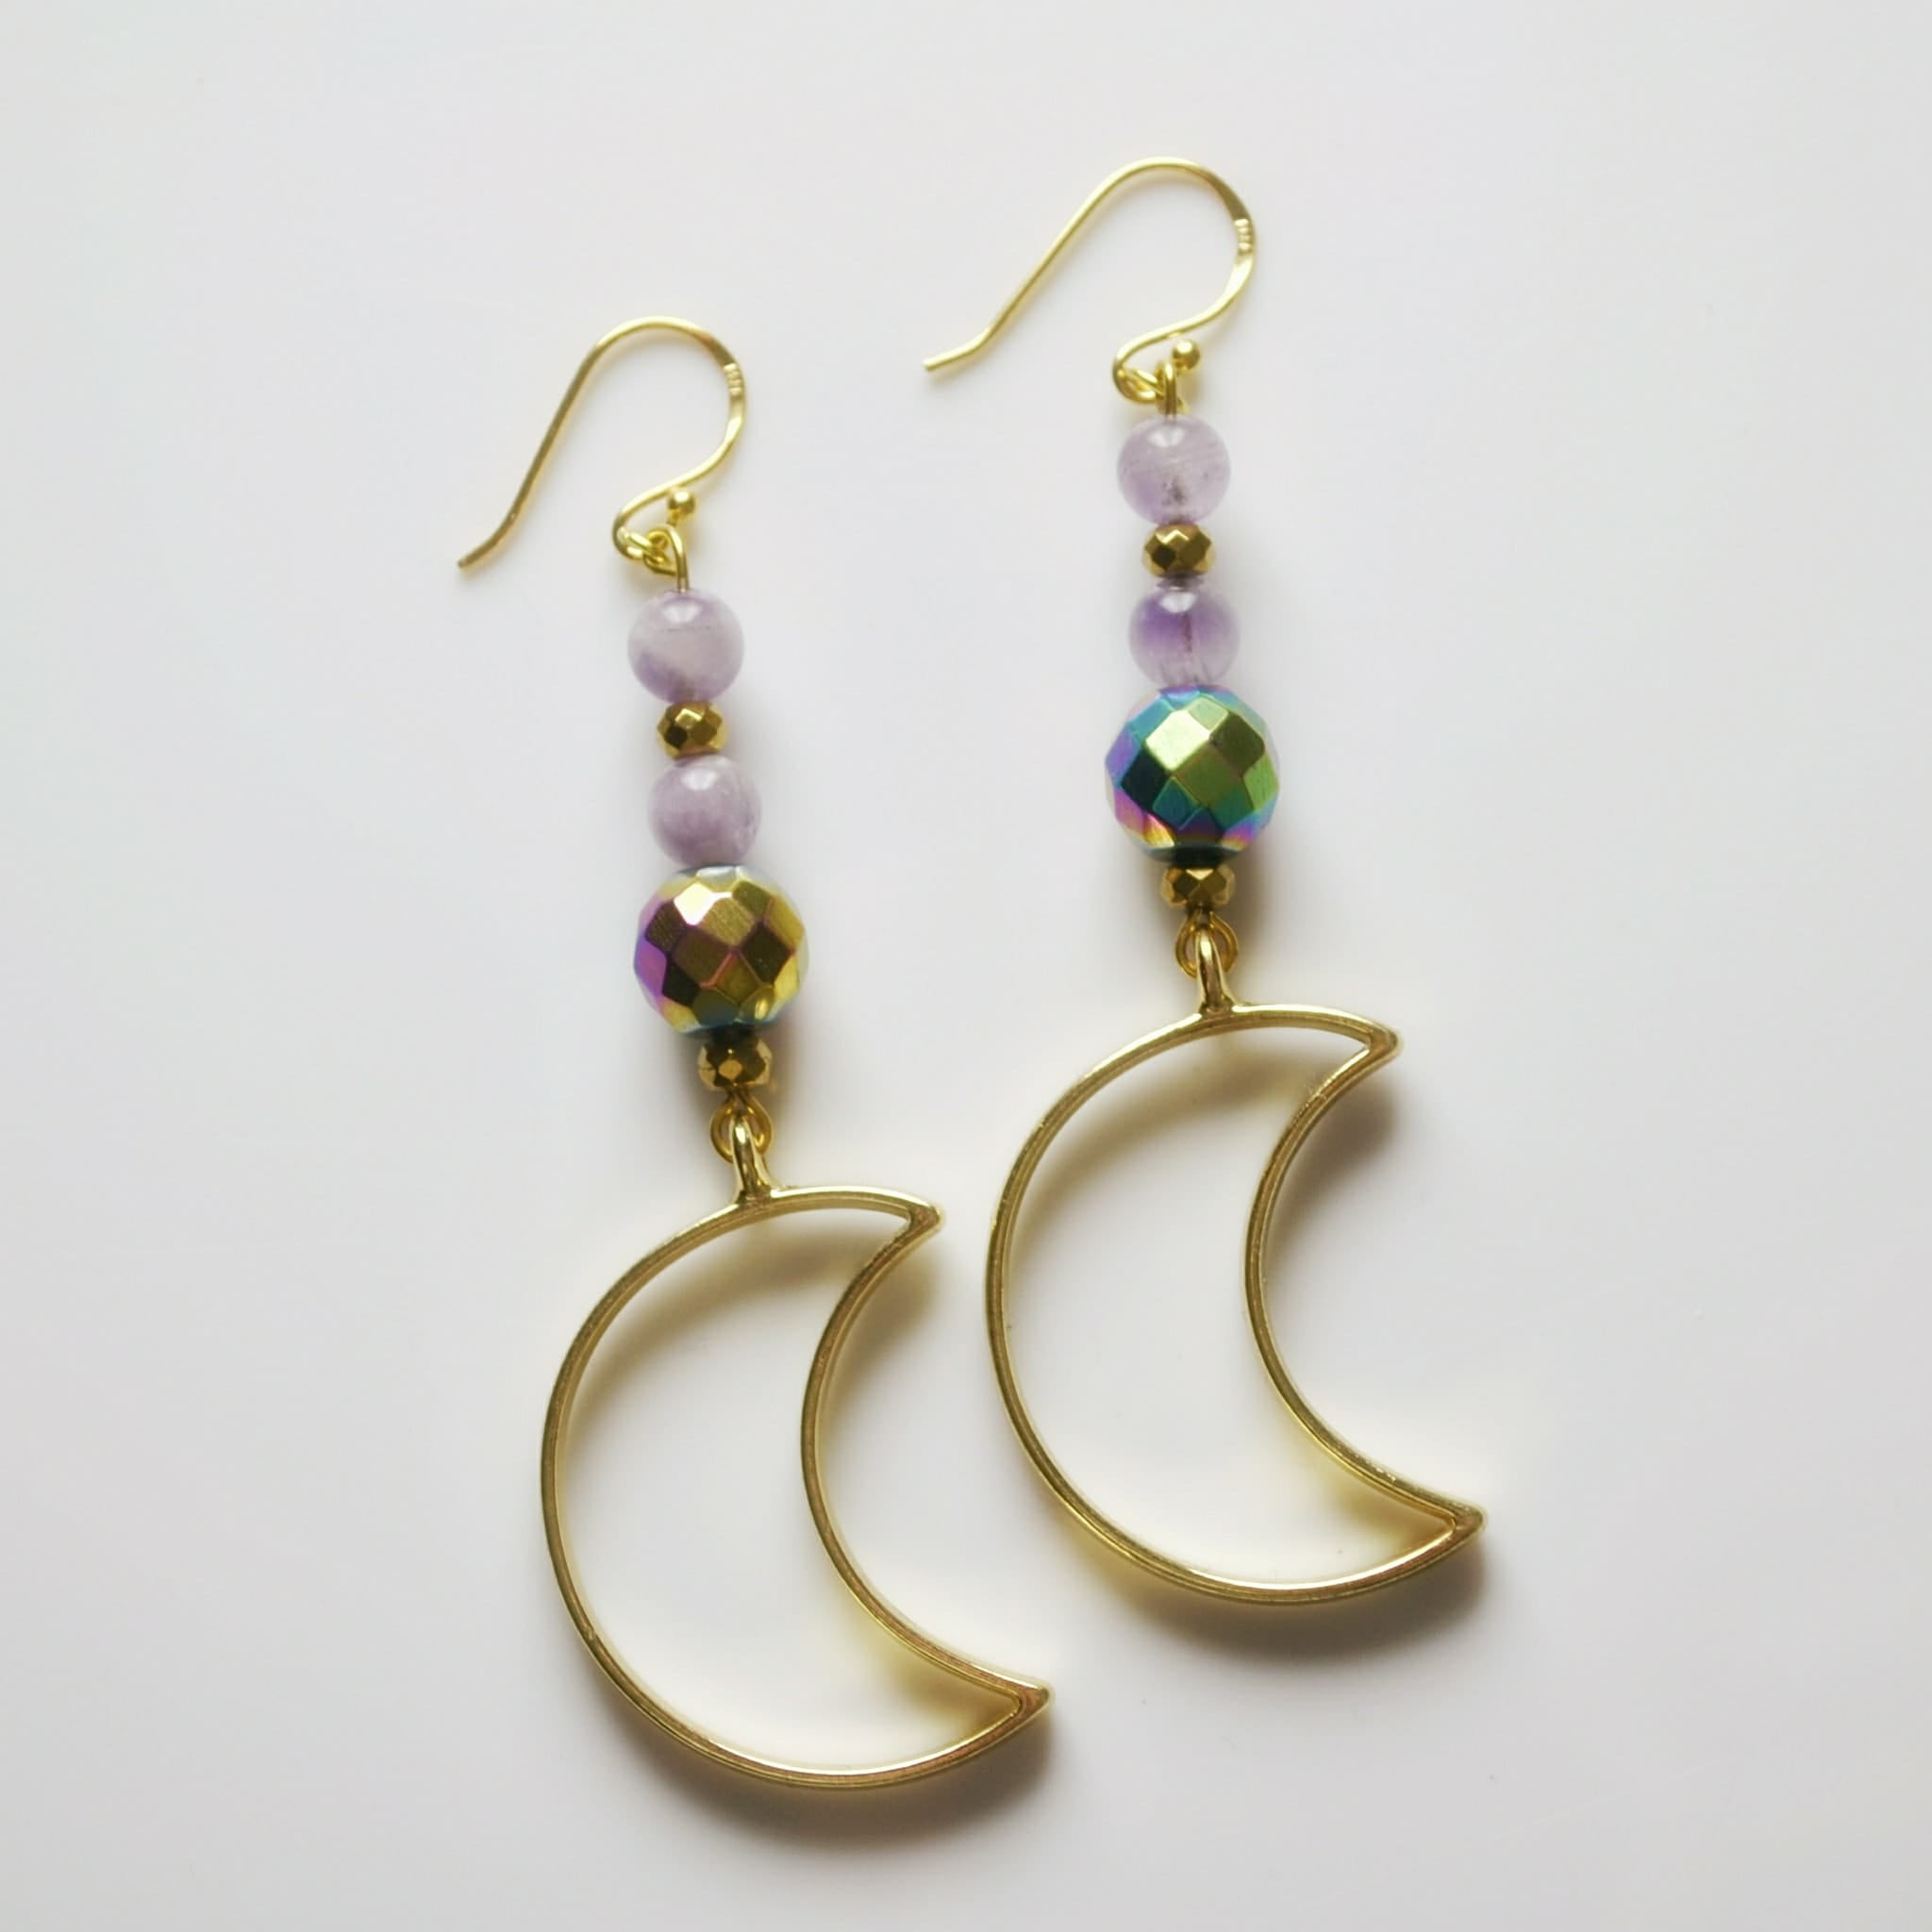 Mermaid Midnight Swim Earrings - Lost Cosmos